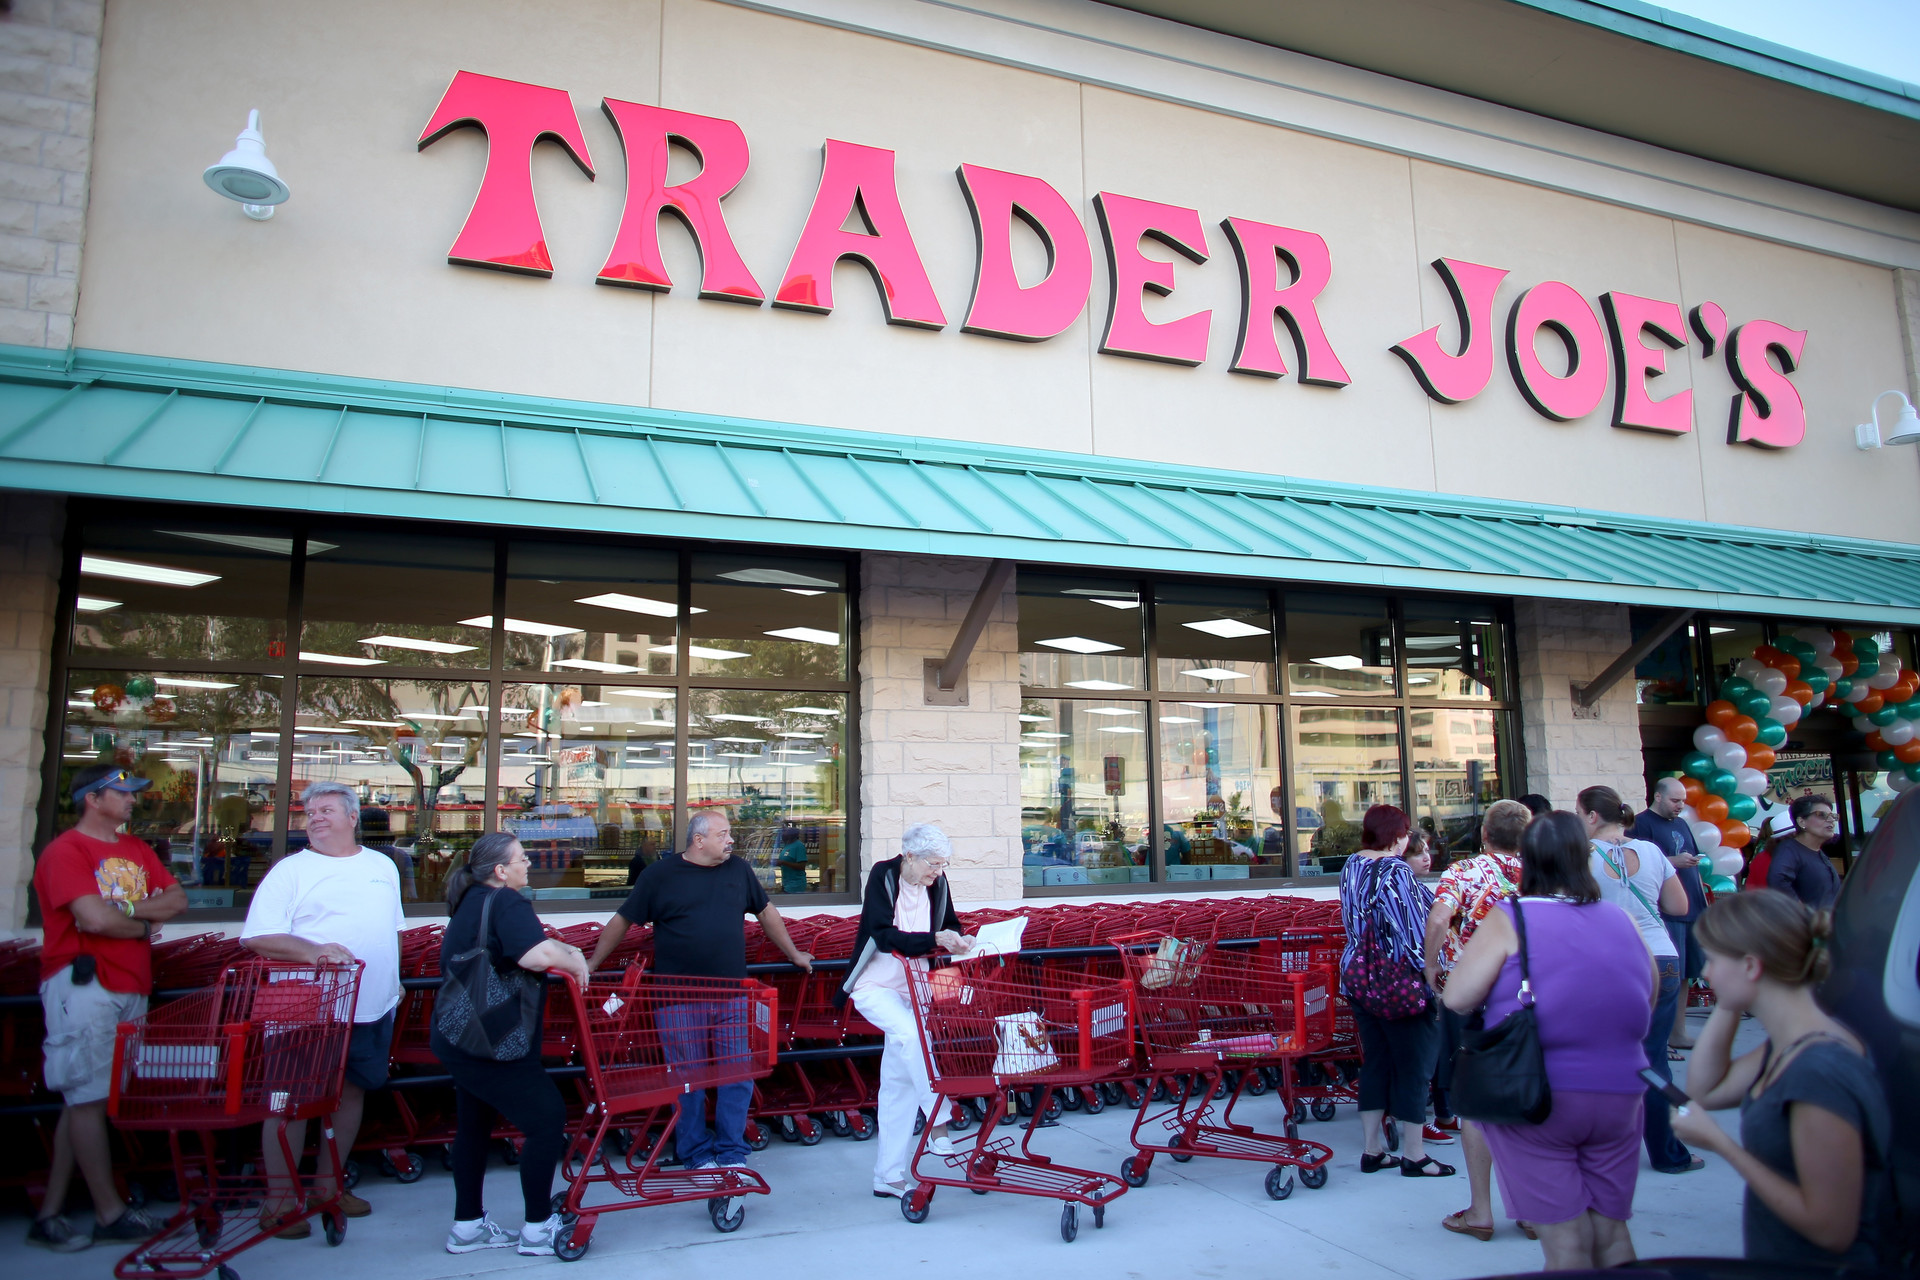 People shop at a Trader Joe's store.